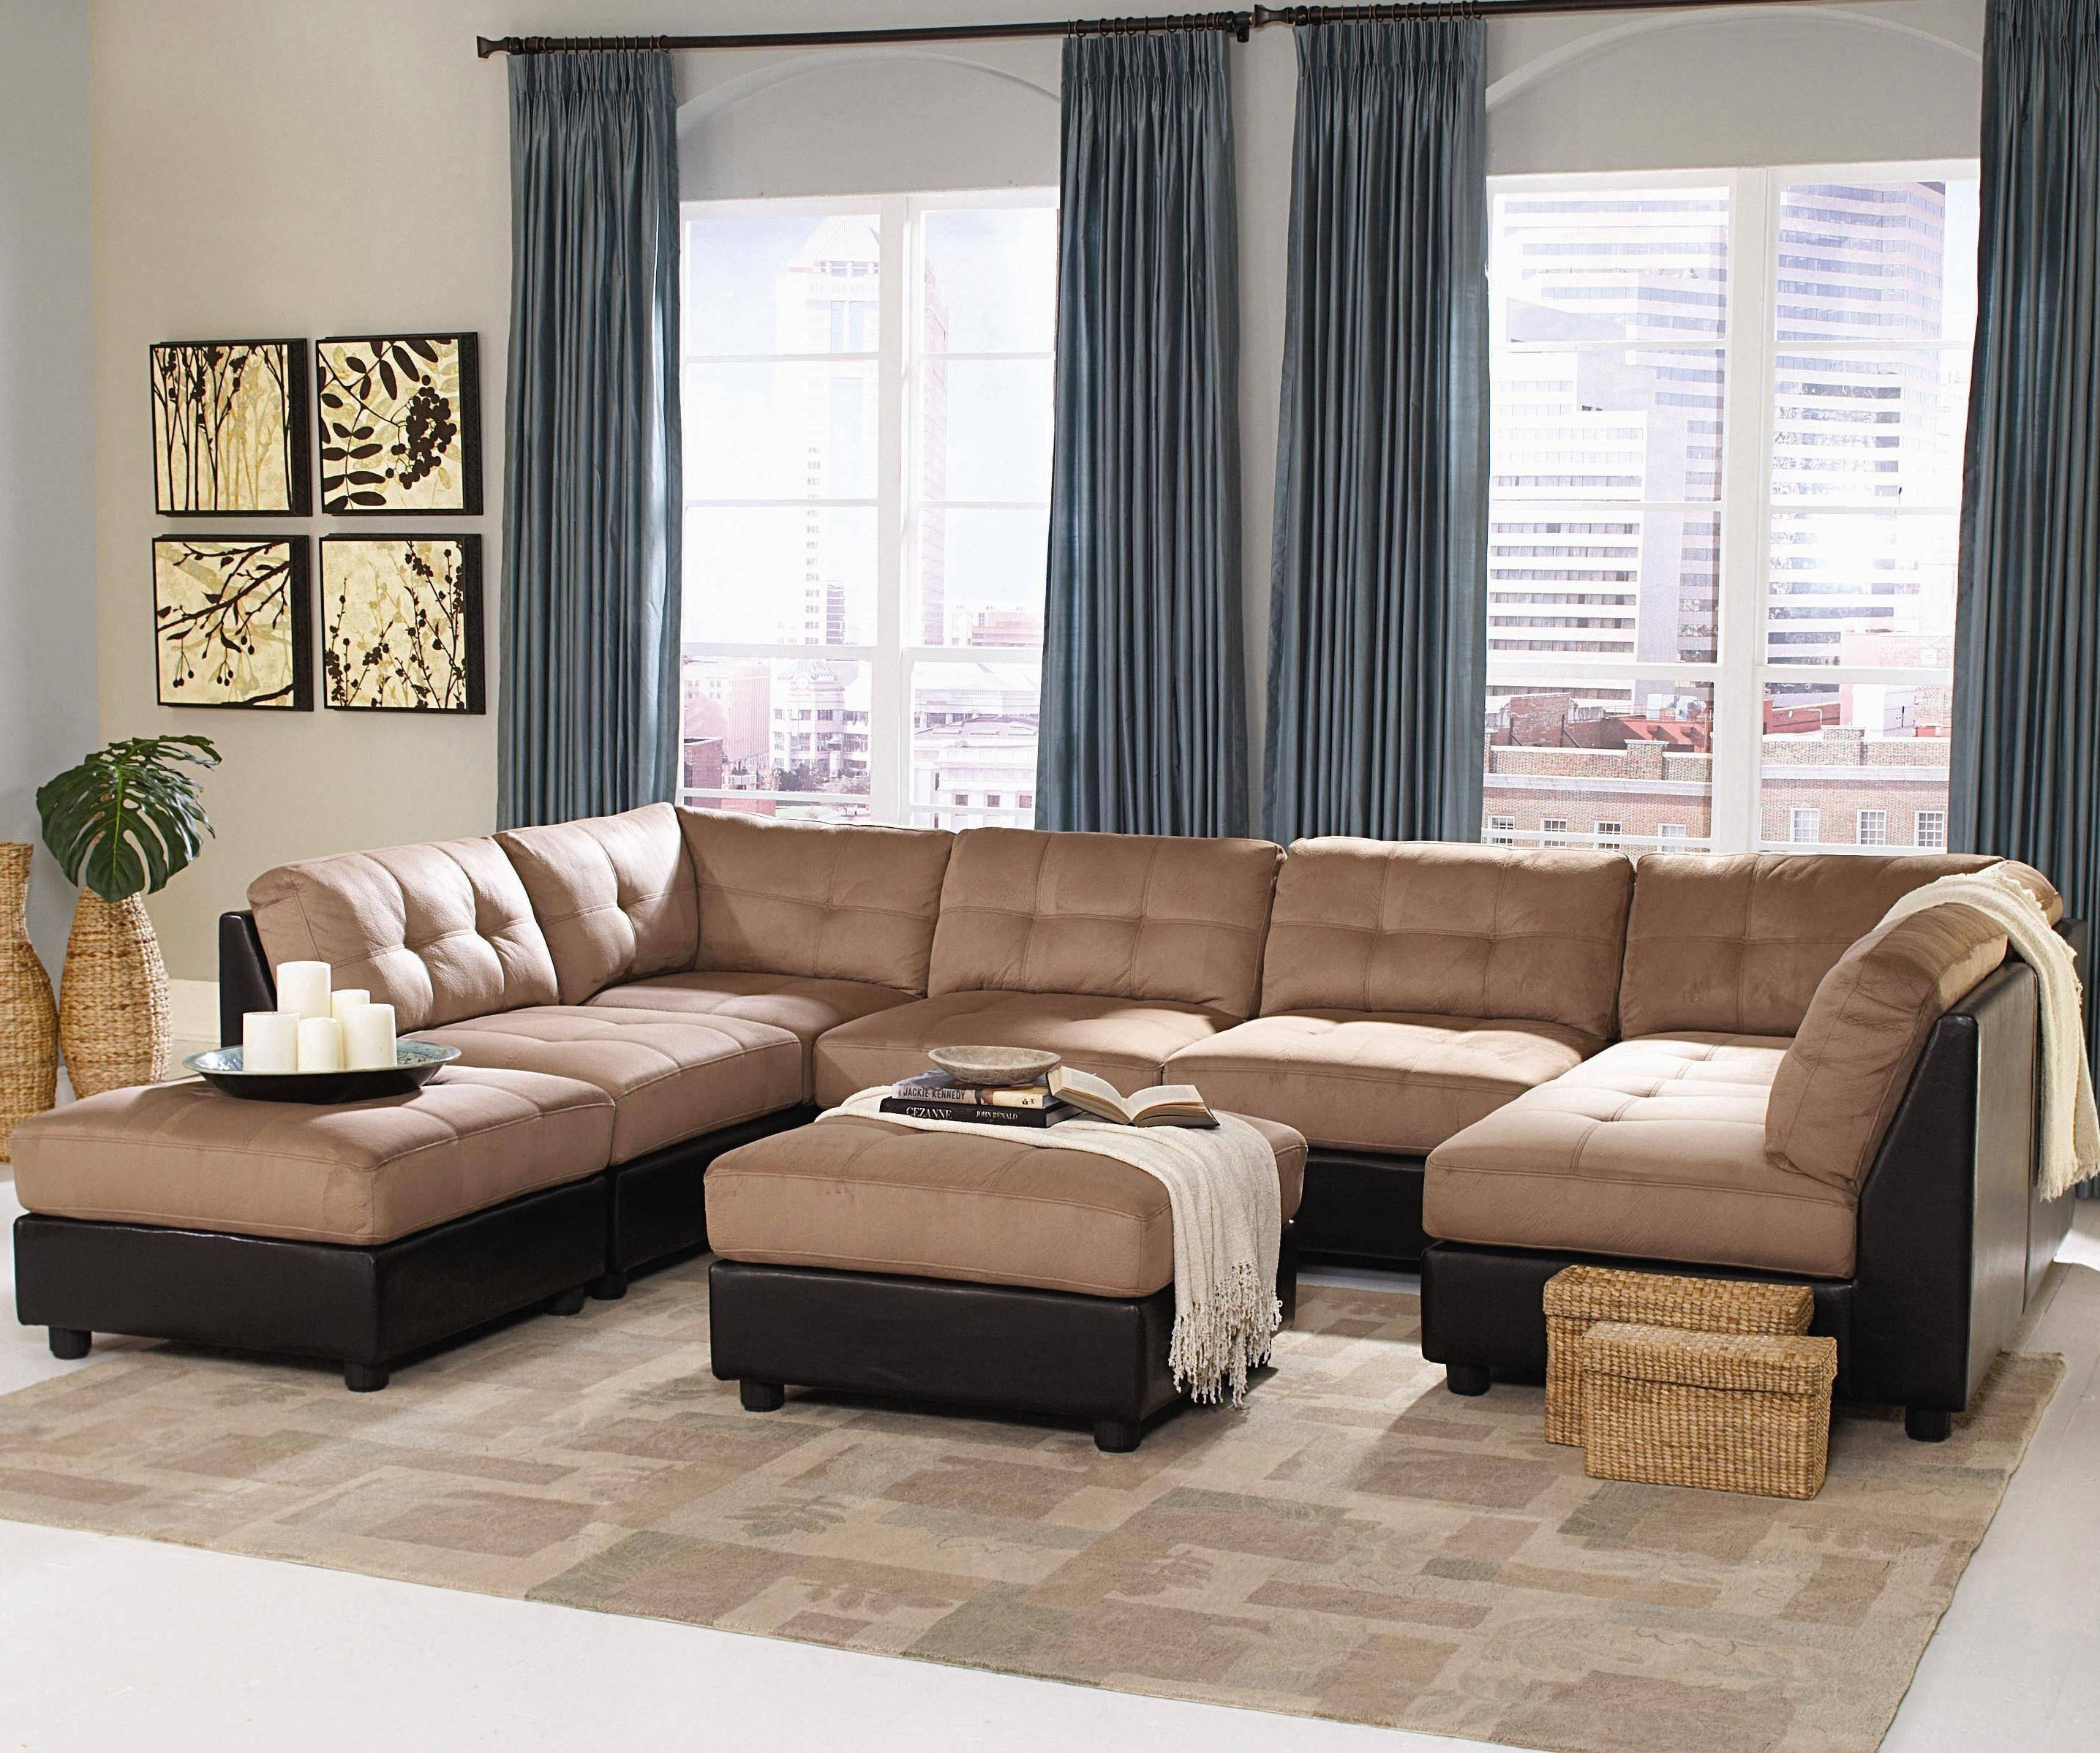 Furniture Home : Milano Modern Elegant 2017 Microfiber Sectional inside Elegant Sectional Sofa (Image 15 of 25)